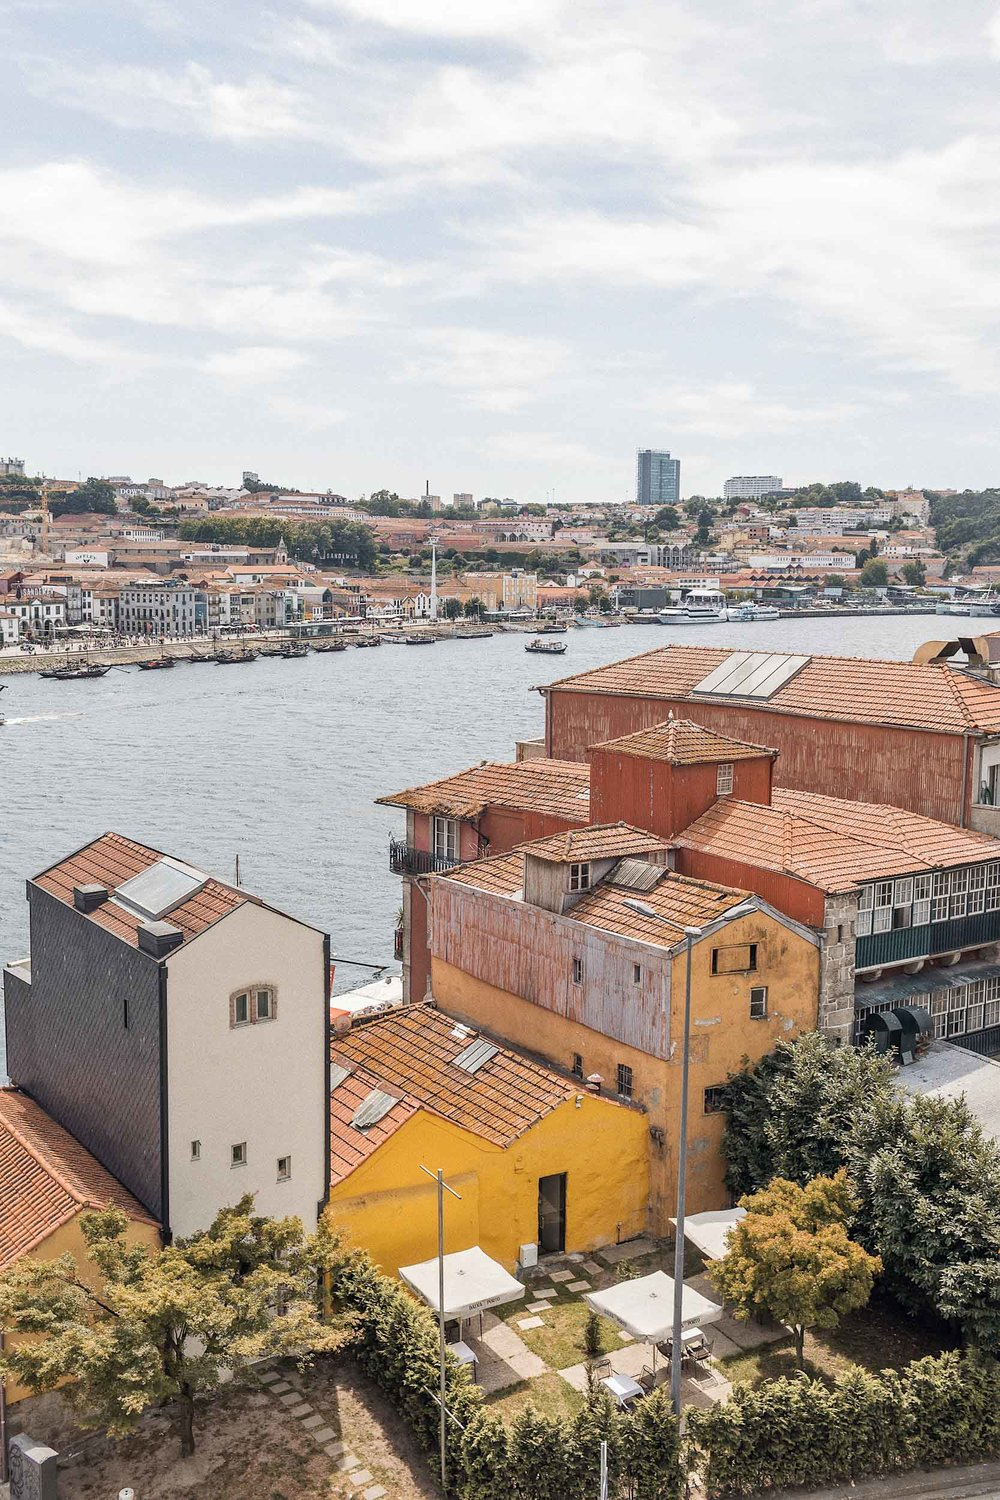 The perfect Portugal travel itinerary includes a visit to Porto, Portugal's second biggest city